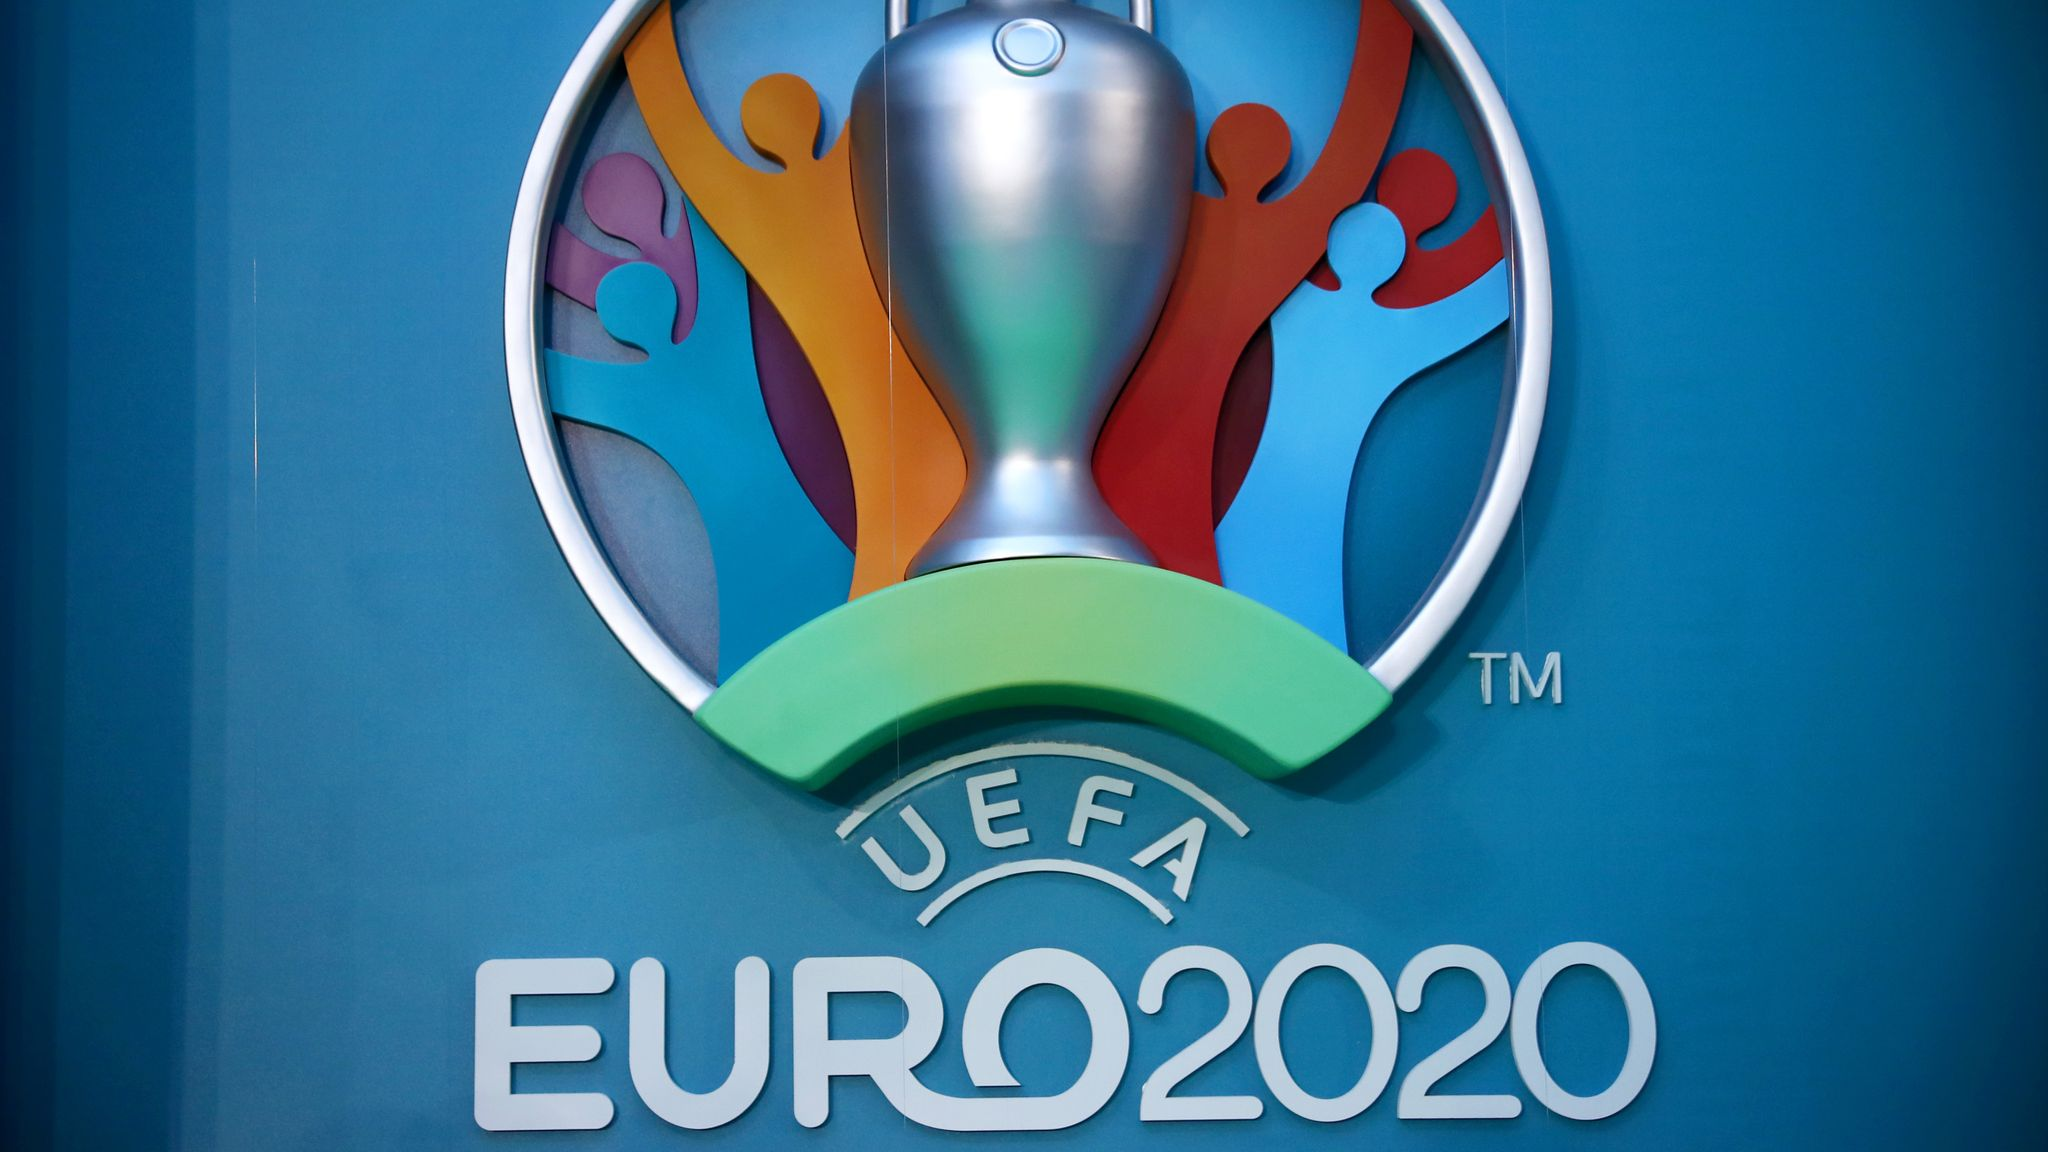 UEFA EURO 2020 fixtures, dates, Venues, Groups and TV Info thumbnail